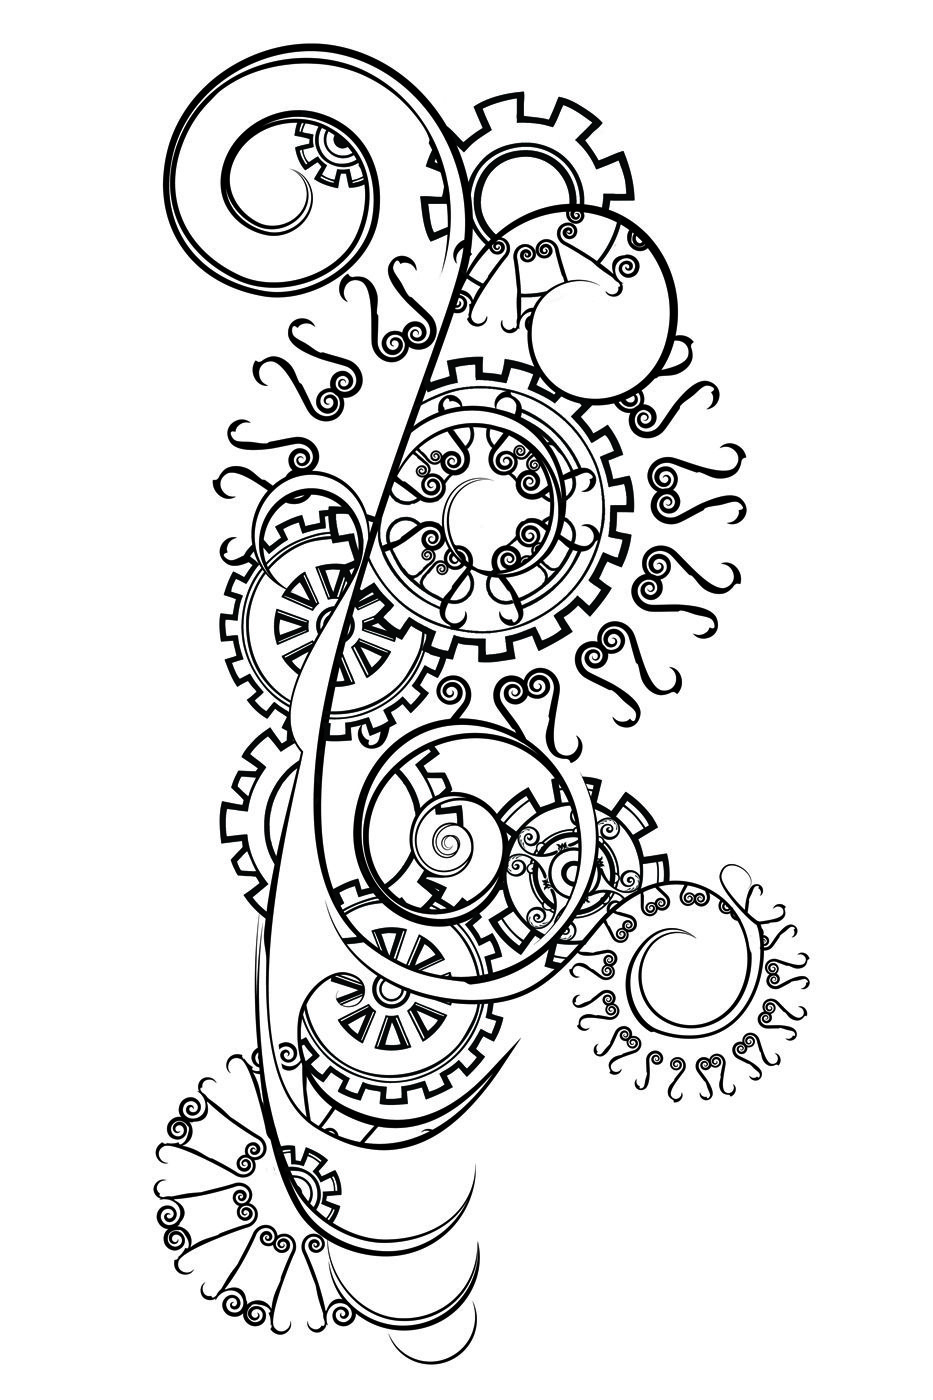 Tattoo gear tattoo sleeve mechanic tattoo mechanical tattoo gears - Cool Bike Gear Design For Pyrographing It To The Next Piece Of Furniture What Will Motorcycle Tattoosbike